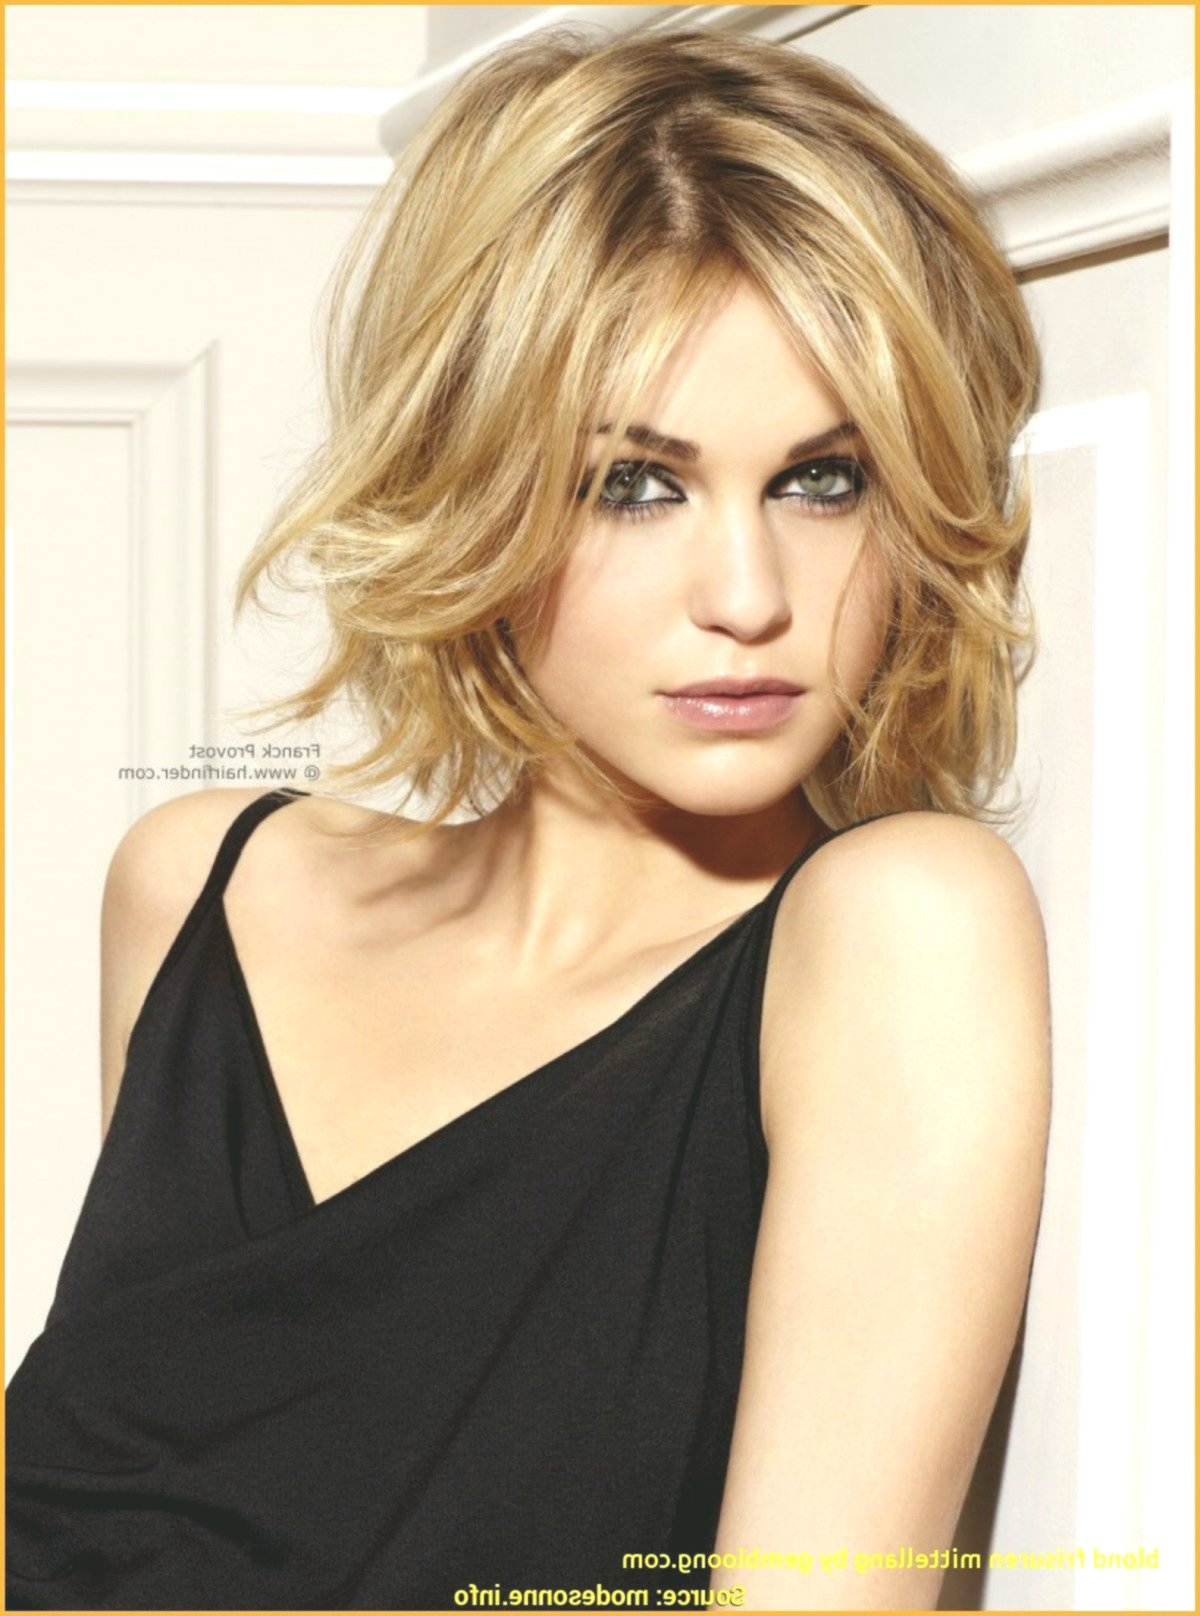 terribly cool blonde short-haired architecture-modern blond shorthair ideas